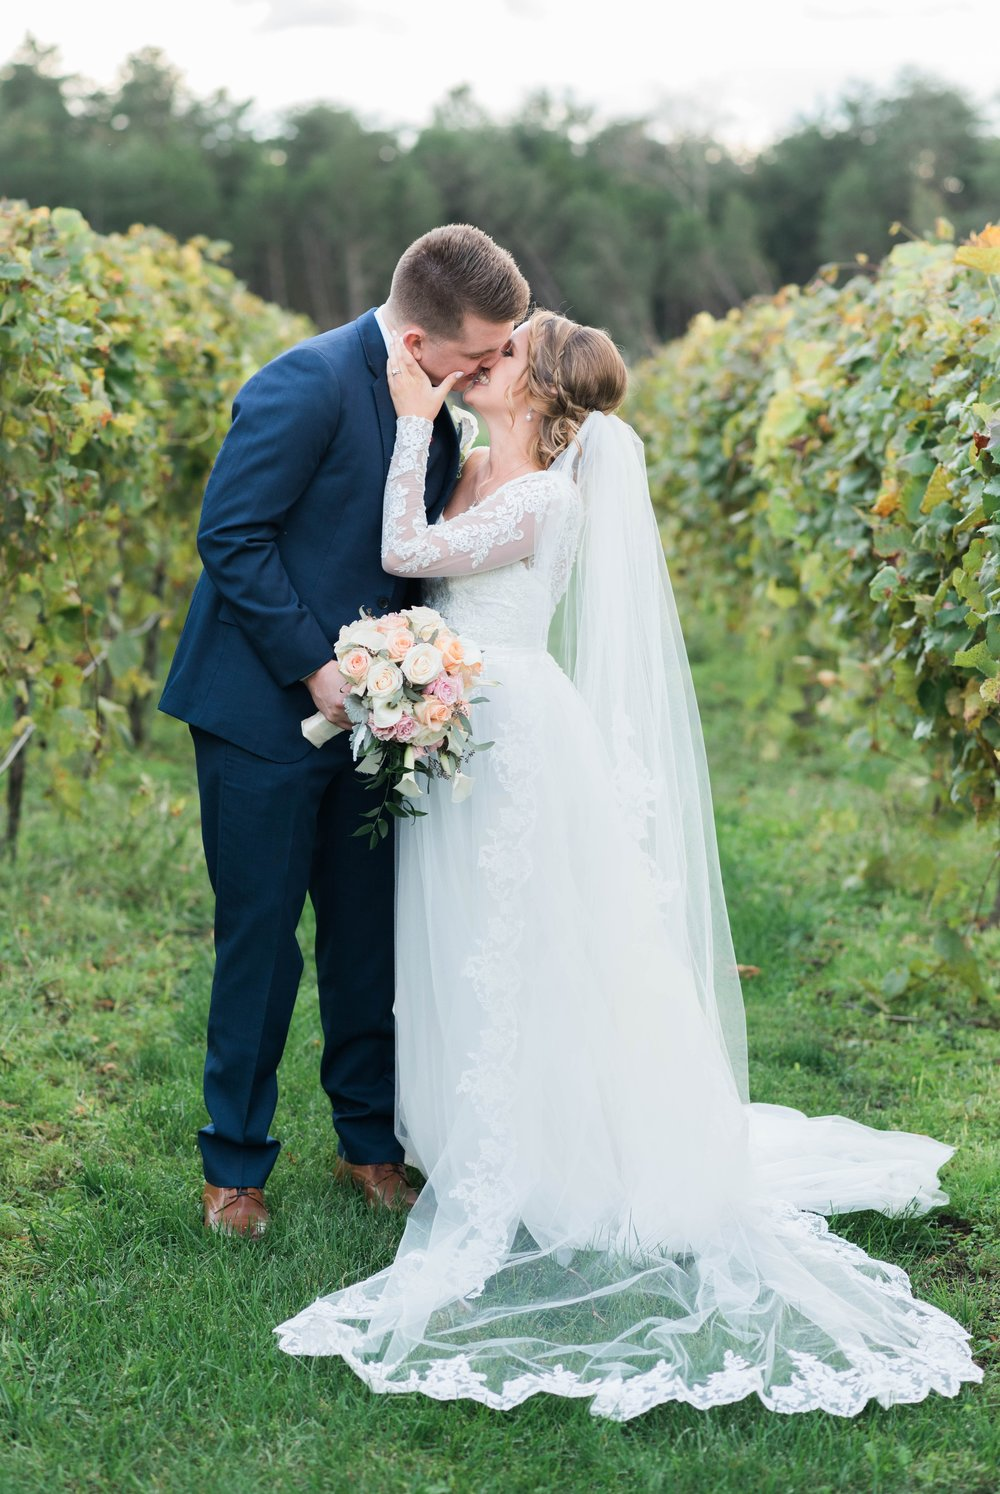 GrantElizabeth_wineryatbullrun_DCwedding_Virginiaweddingphotographer 19.jpg